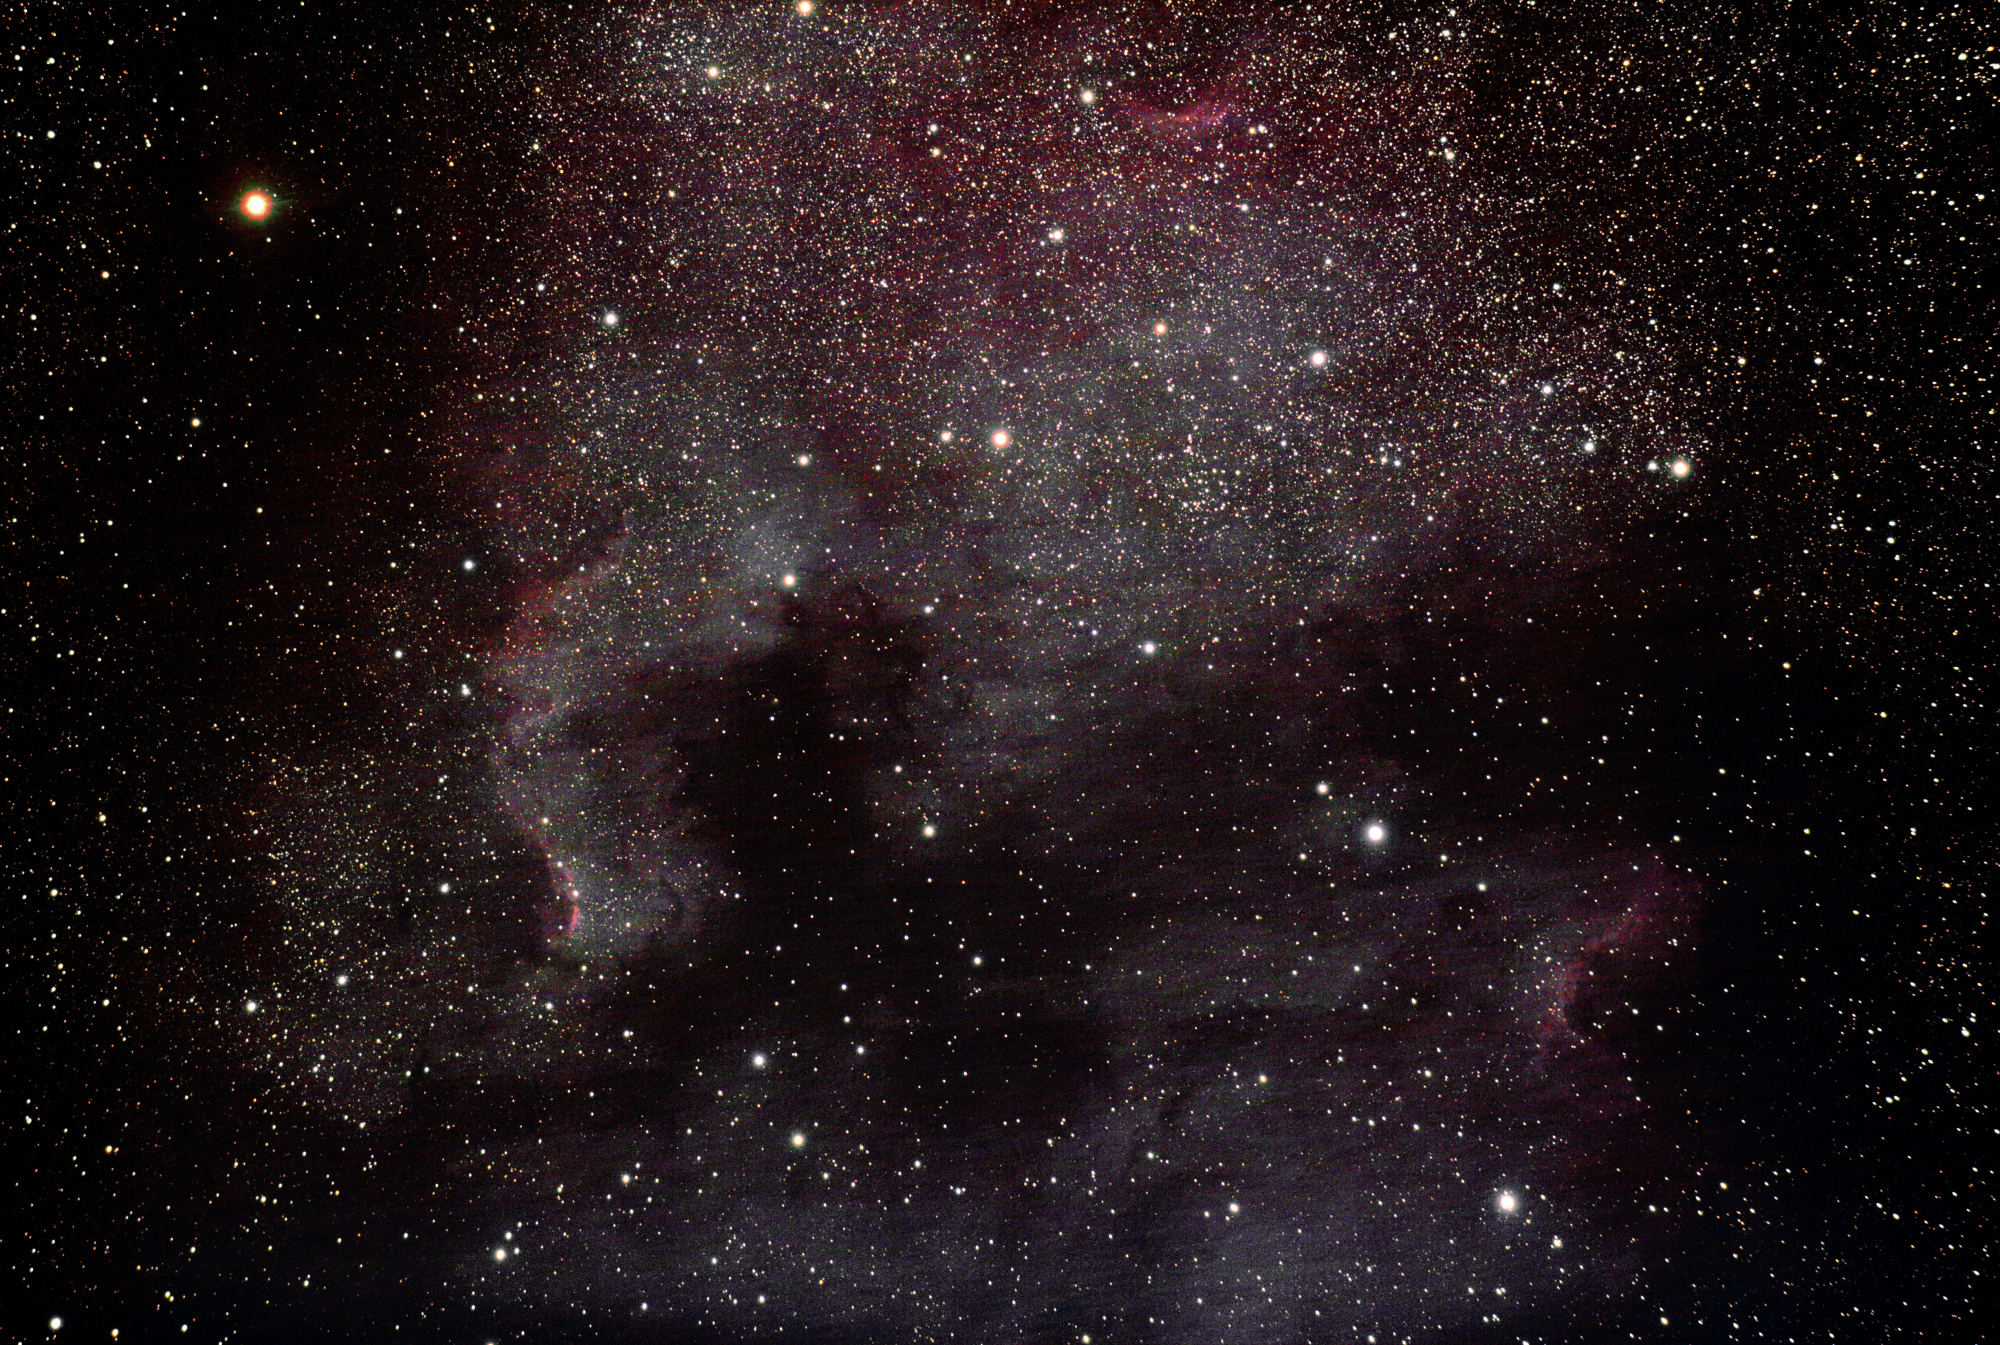 NGC_7000_fausses_couleurs.jpg